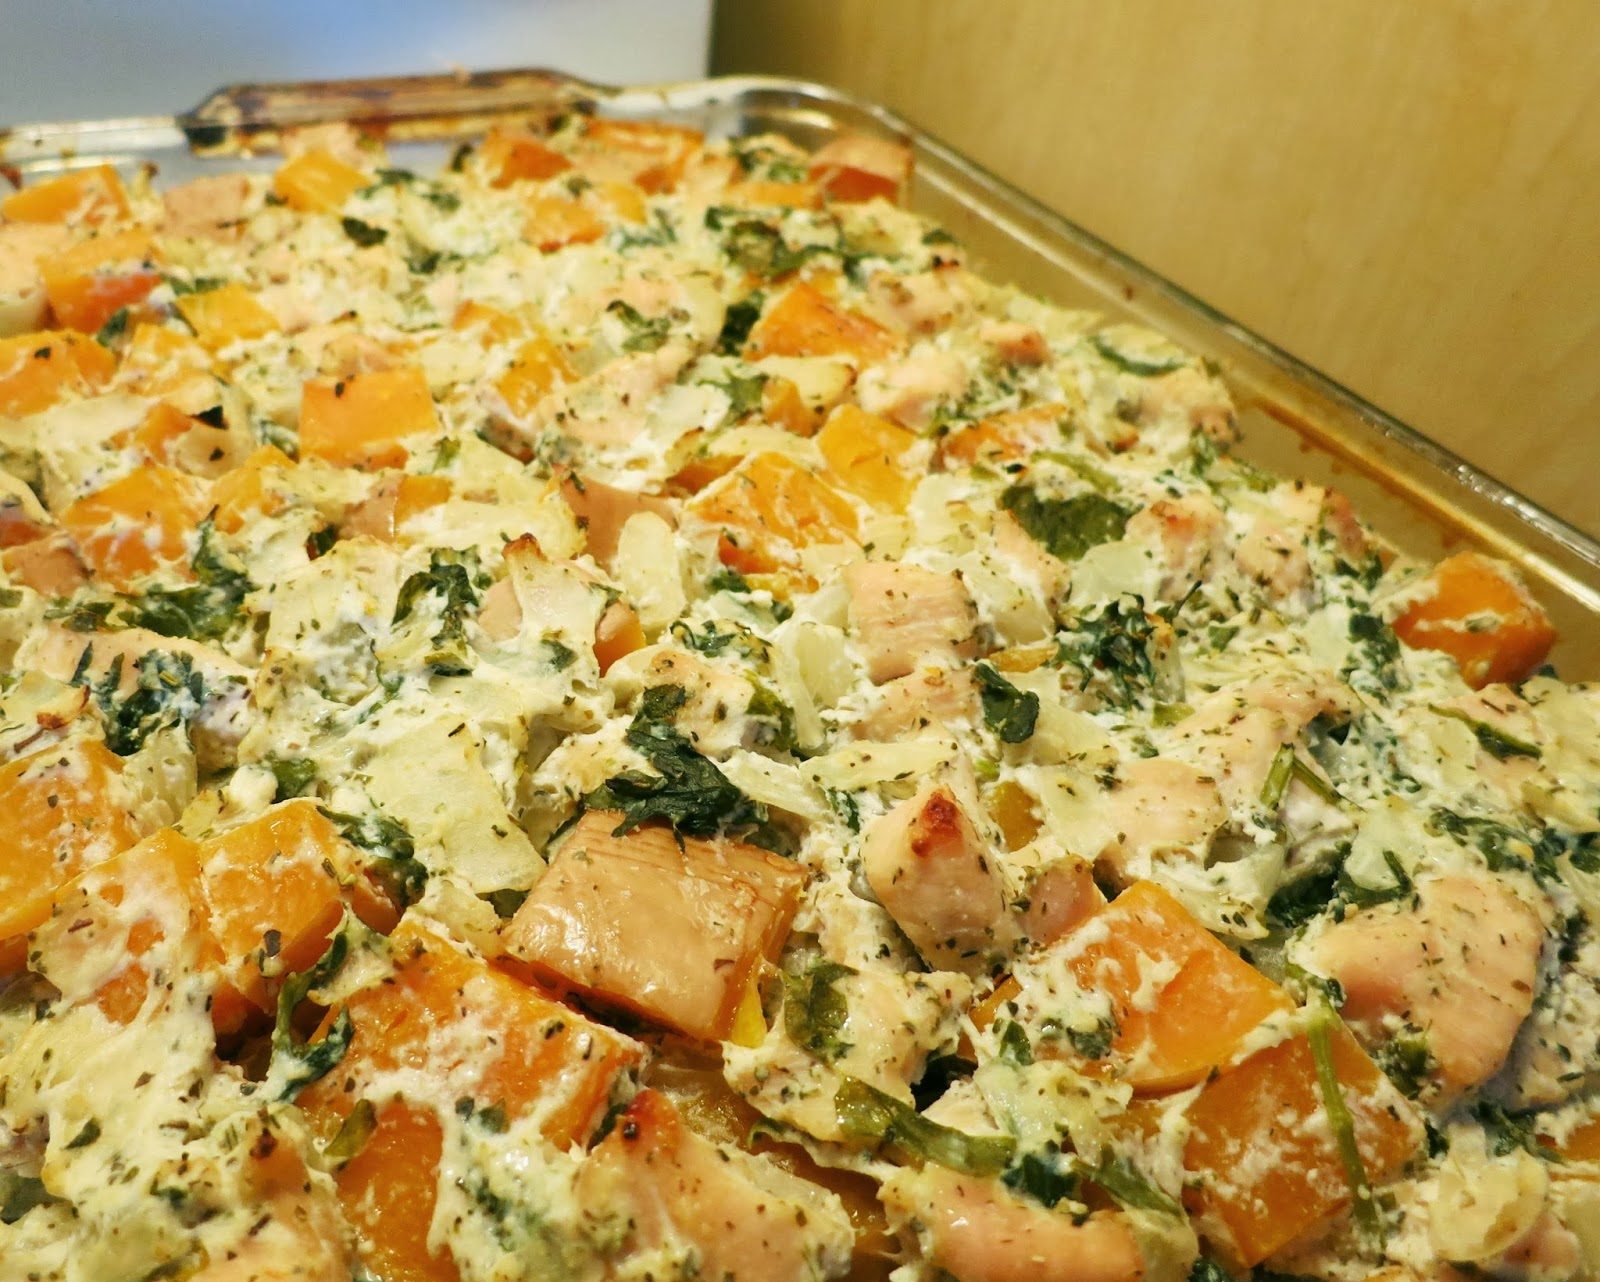 Italian Chicken and Squash Casserole